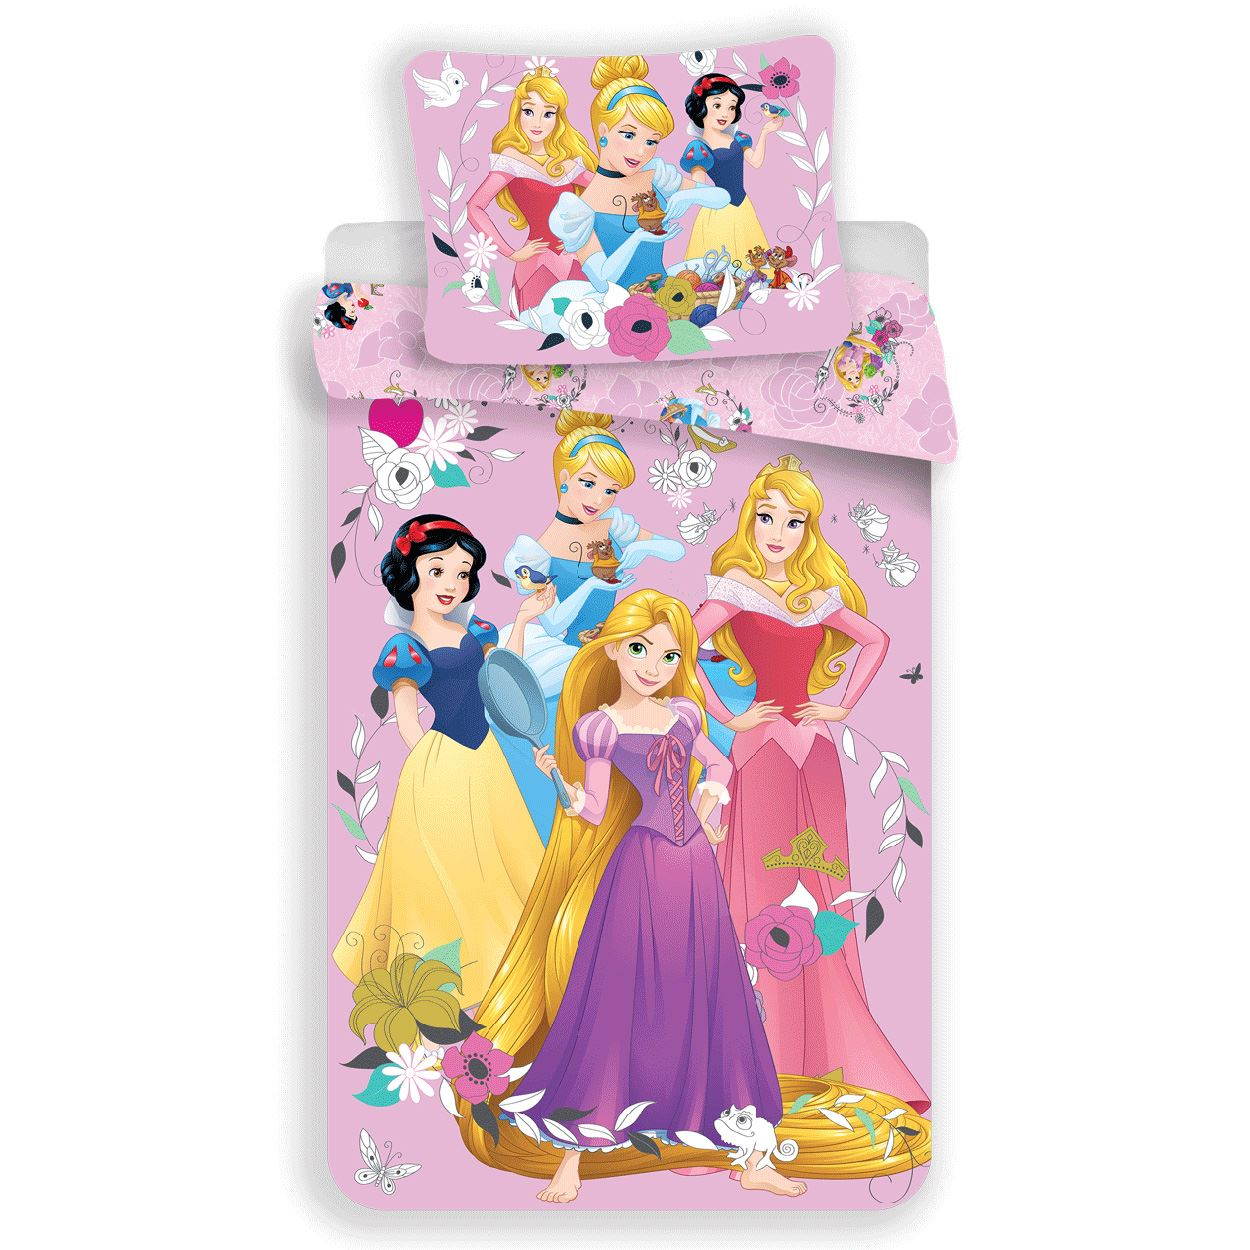 Disney Princess 100 Cotton Duvet Cover Set New Girls Bedding 8592753016763 Ebay